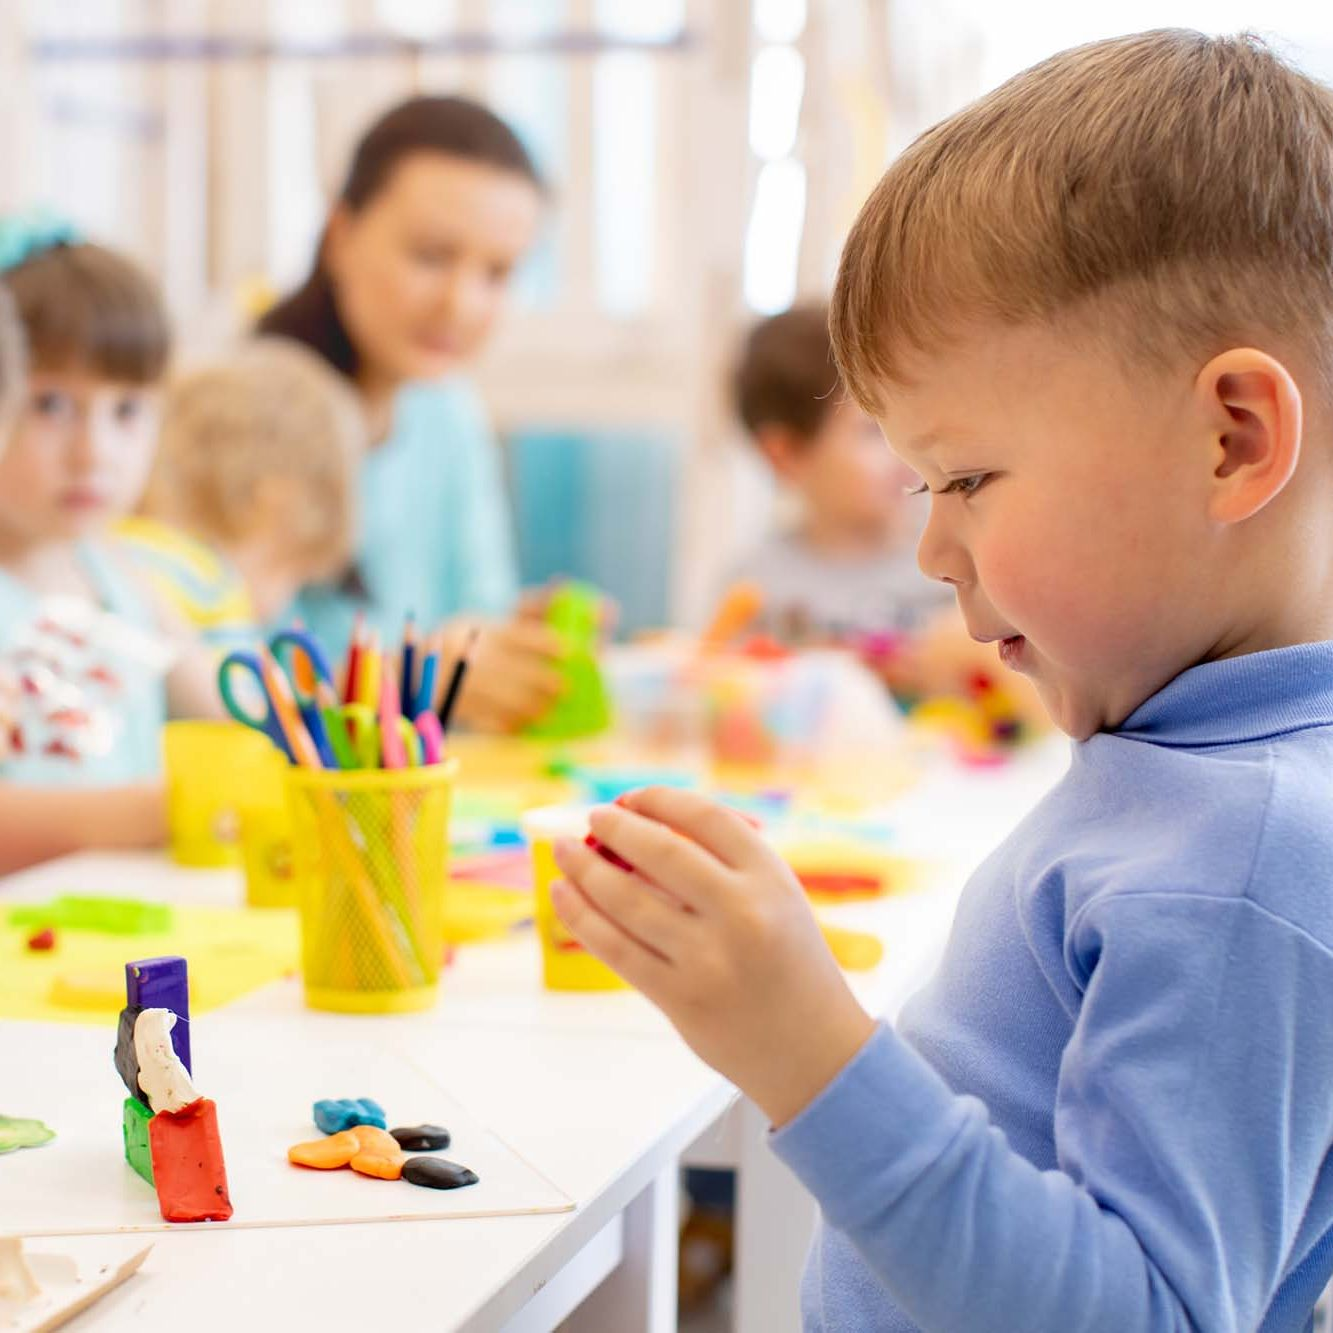 Child boy and group of kids working with colorful clay toy in nursery. Creative child molding in kindergarten. Preschoolers play with plasticine or dough.